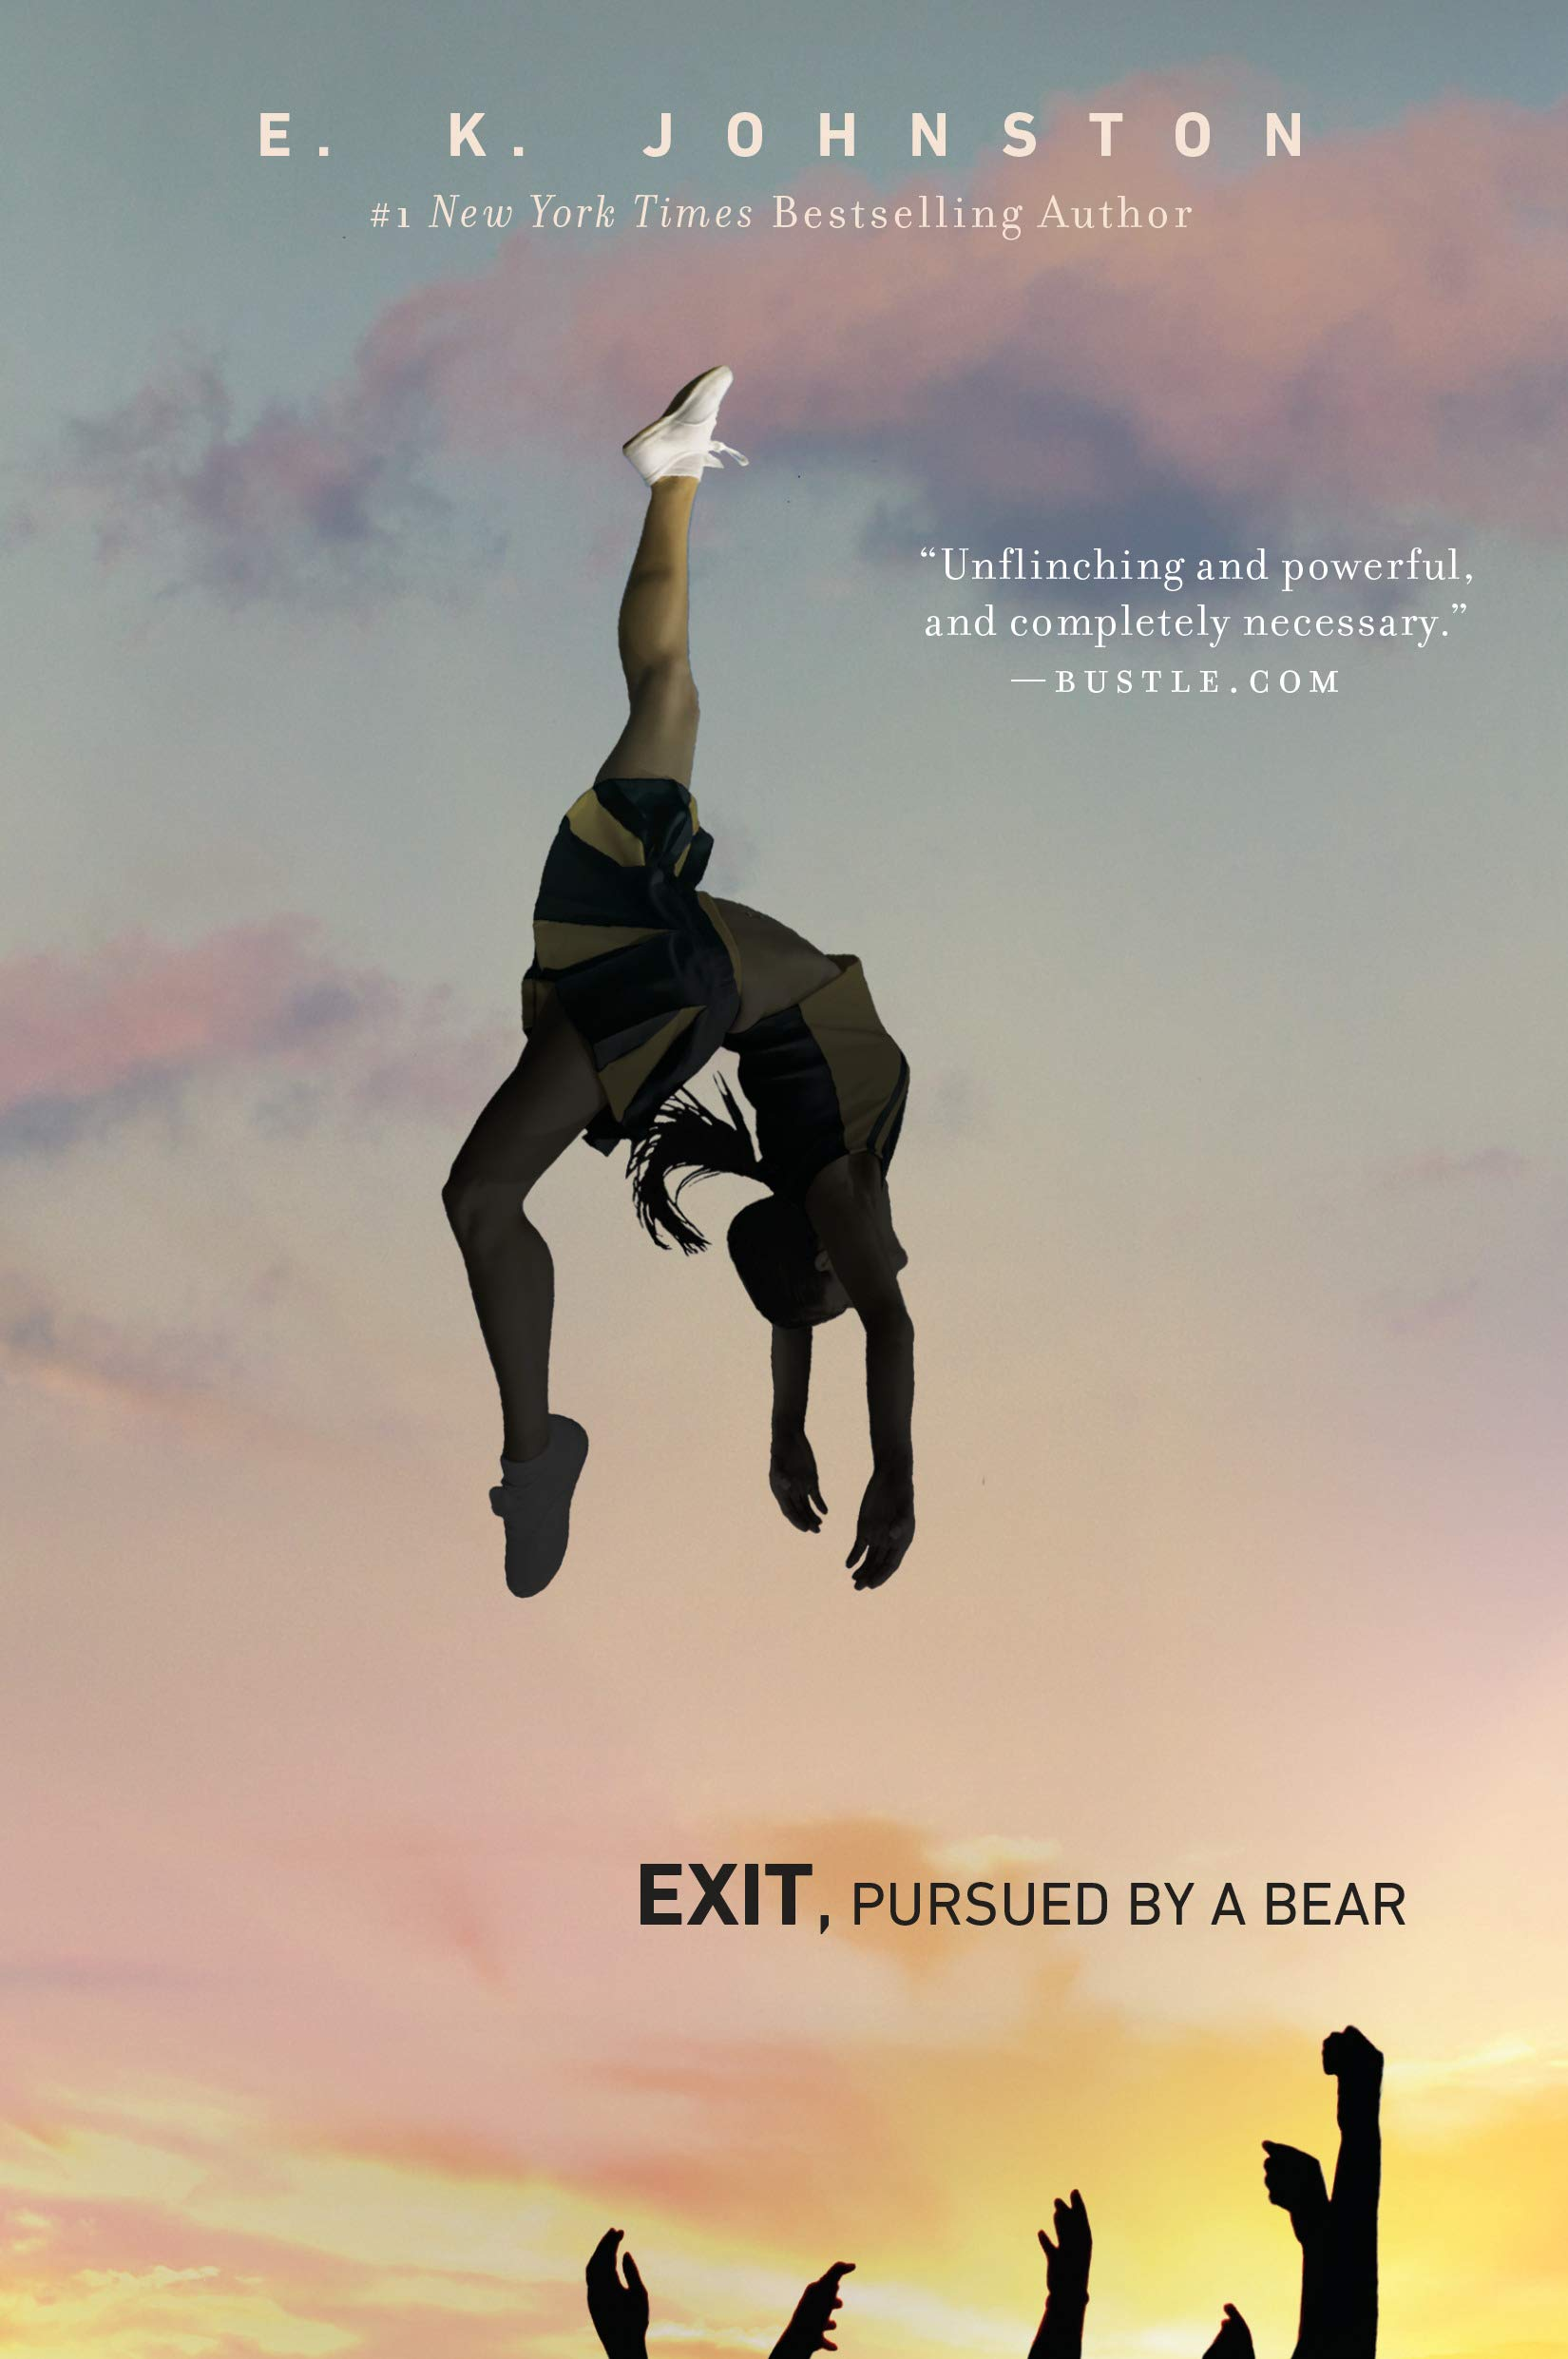 Image result for exit pursued by a bear ek johnston